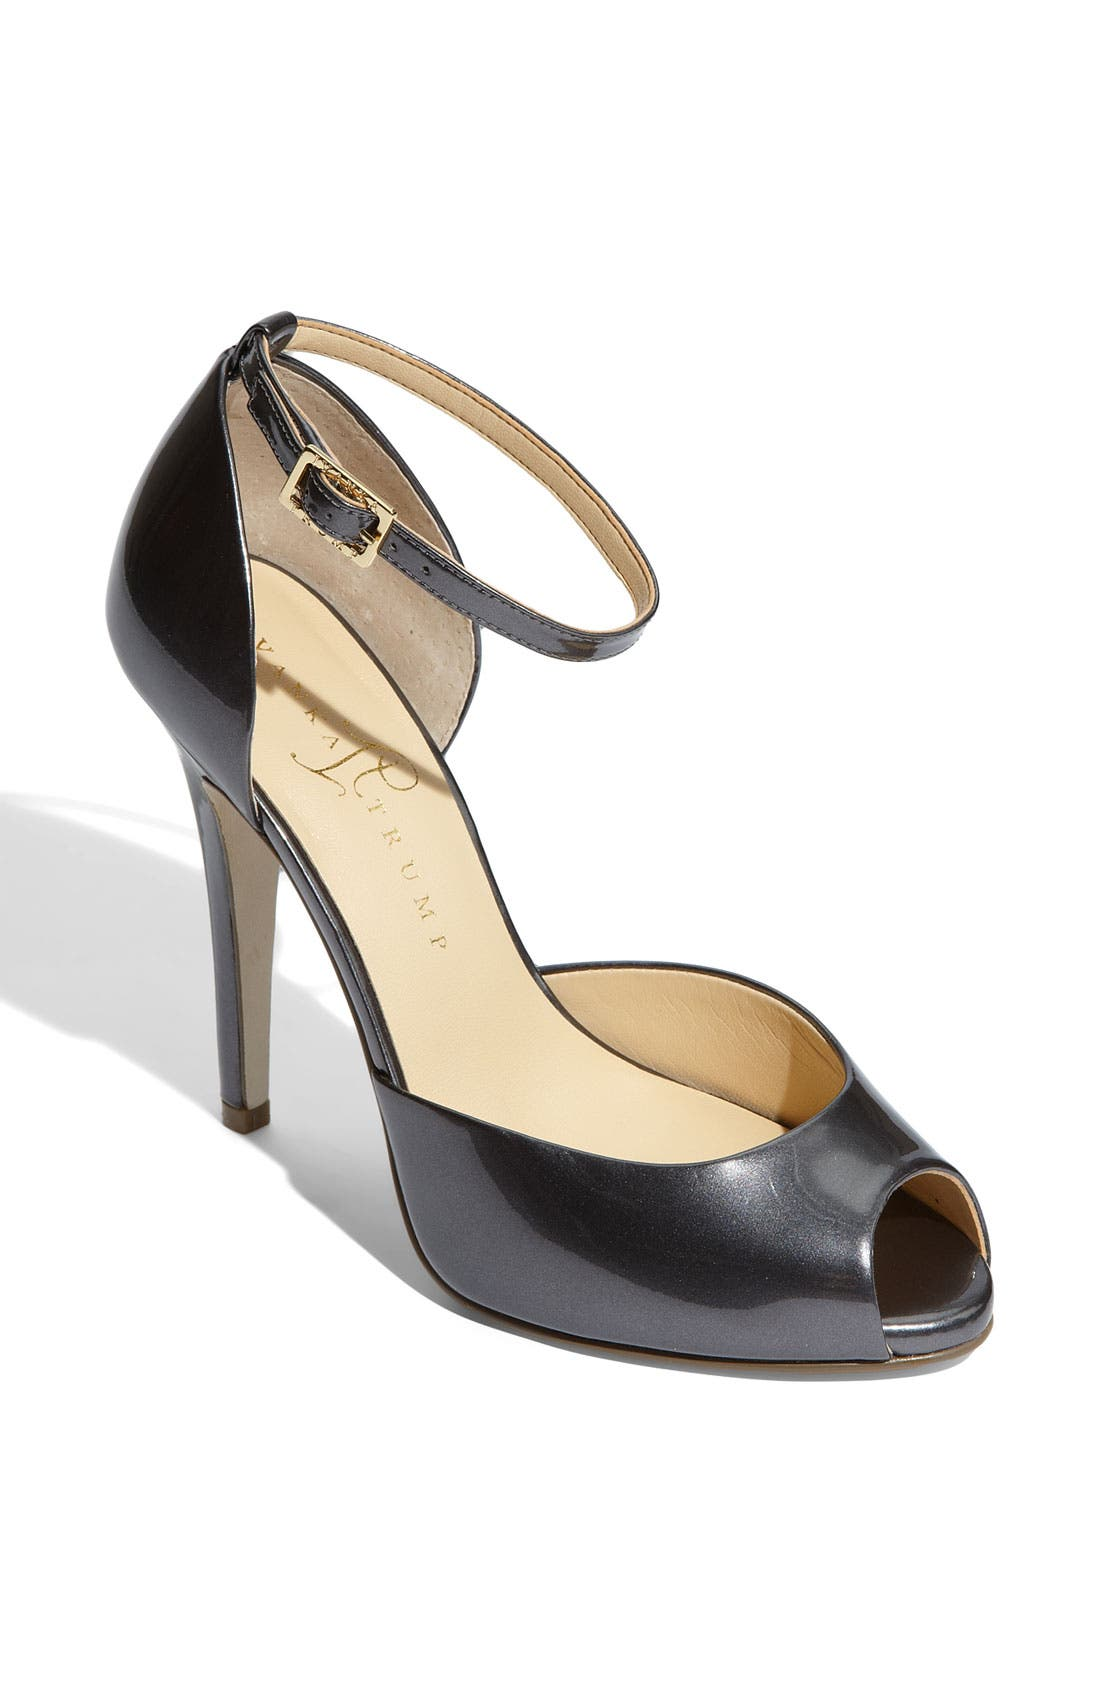 Alternate Image 1 Selected - Ivanka Trump 'Bulbli' Pump